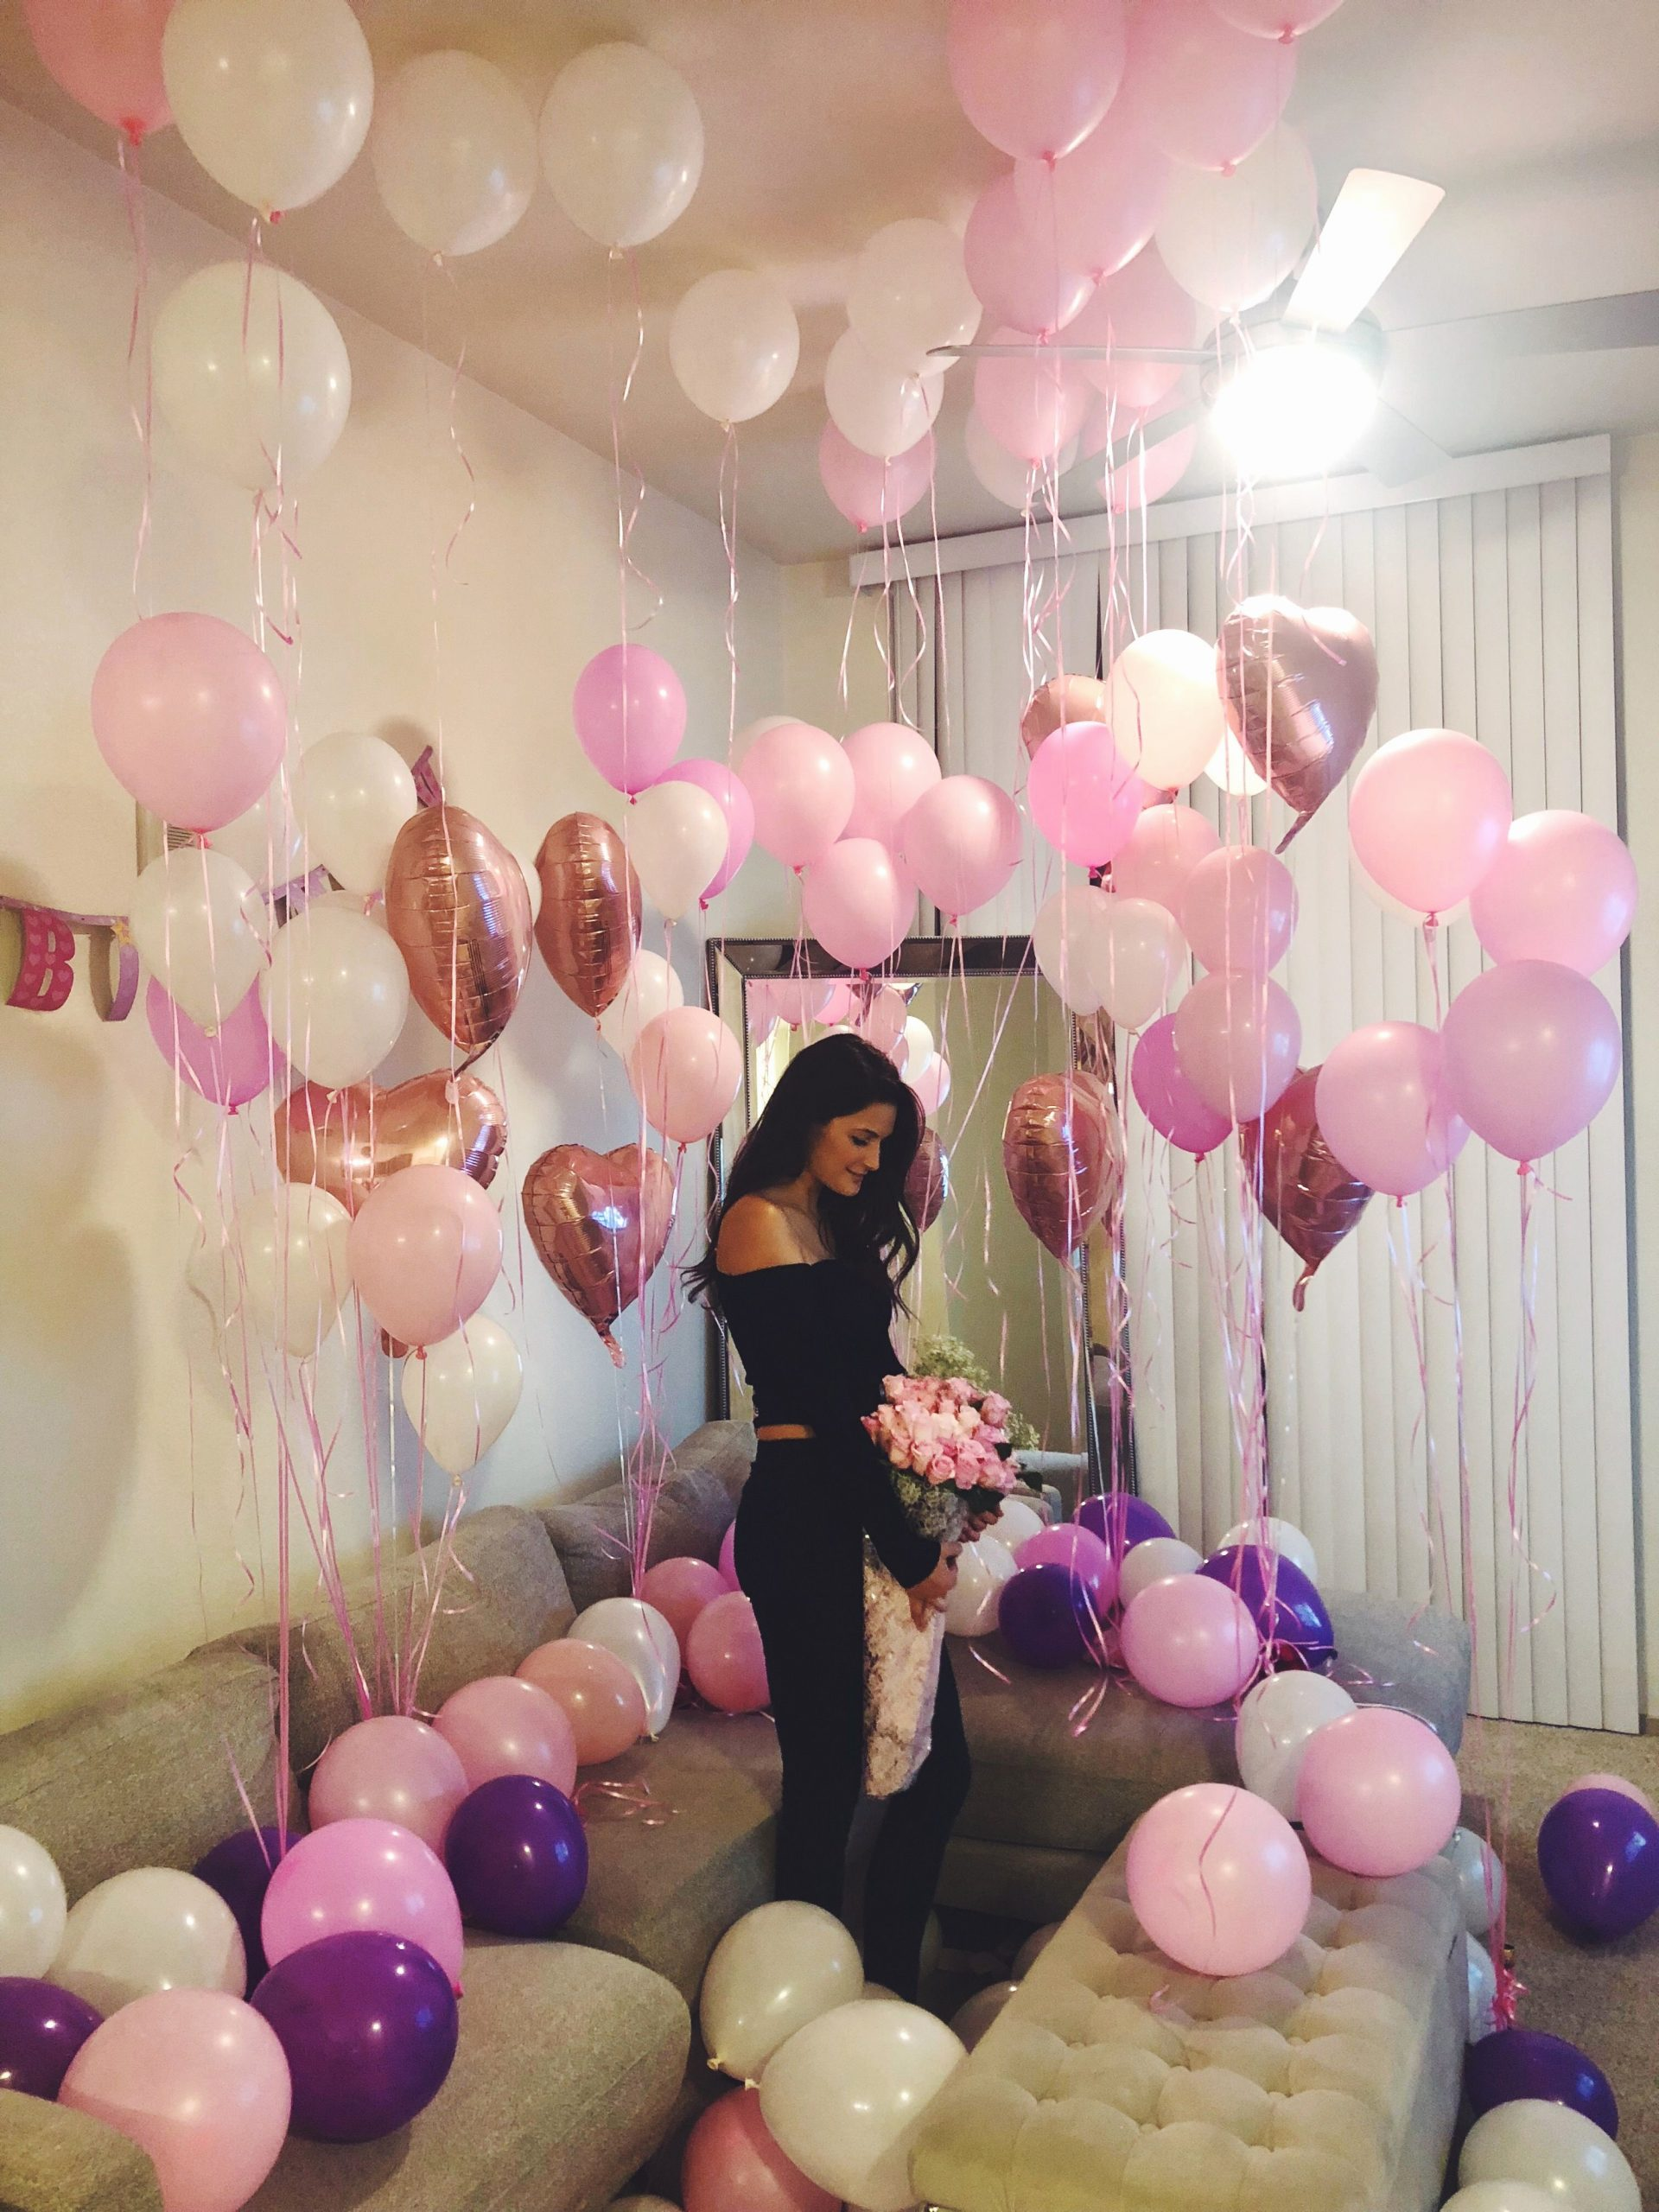 Birthday Decoration Ideas for Gf Inspirational Birthdaygirl Balloons Birthdaysurprise